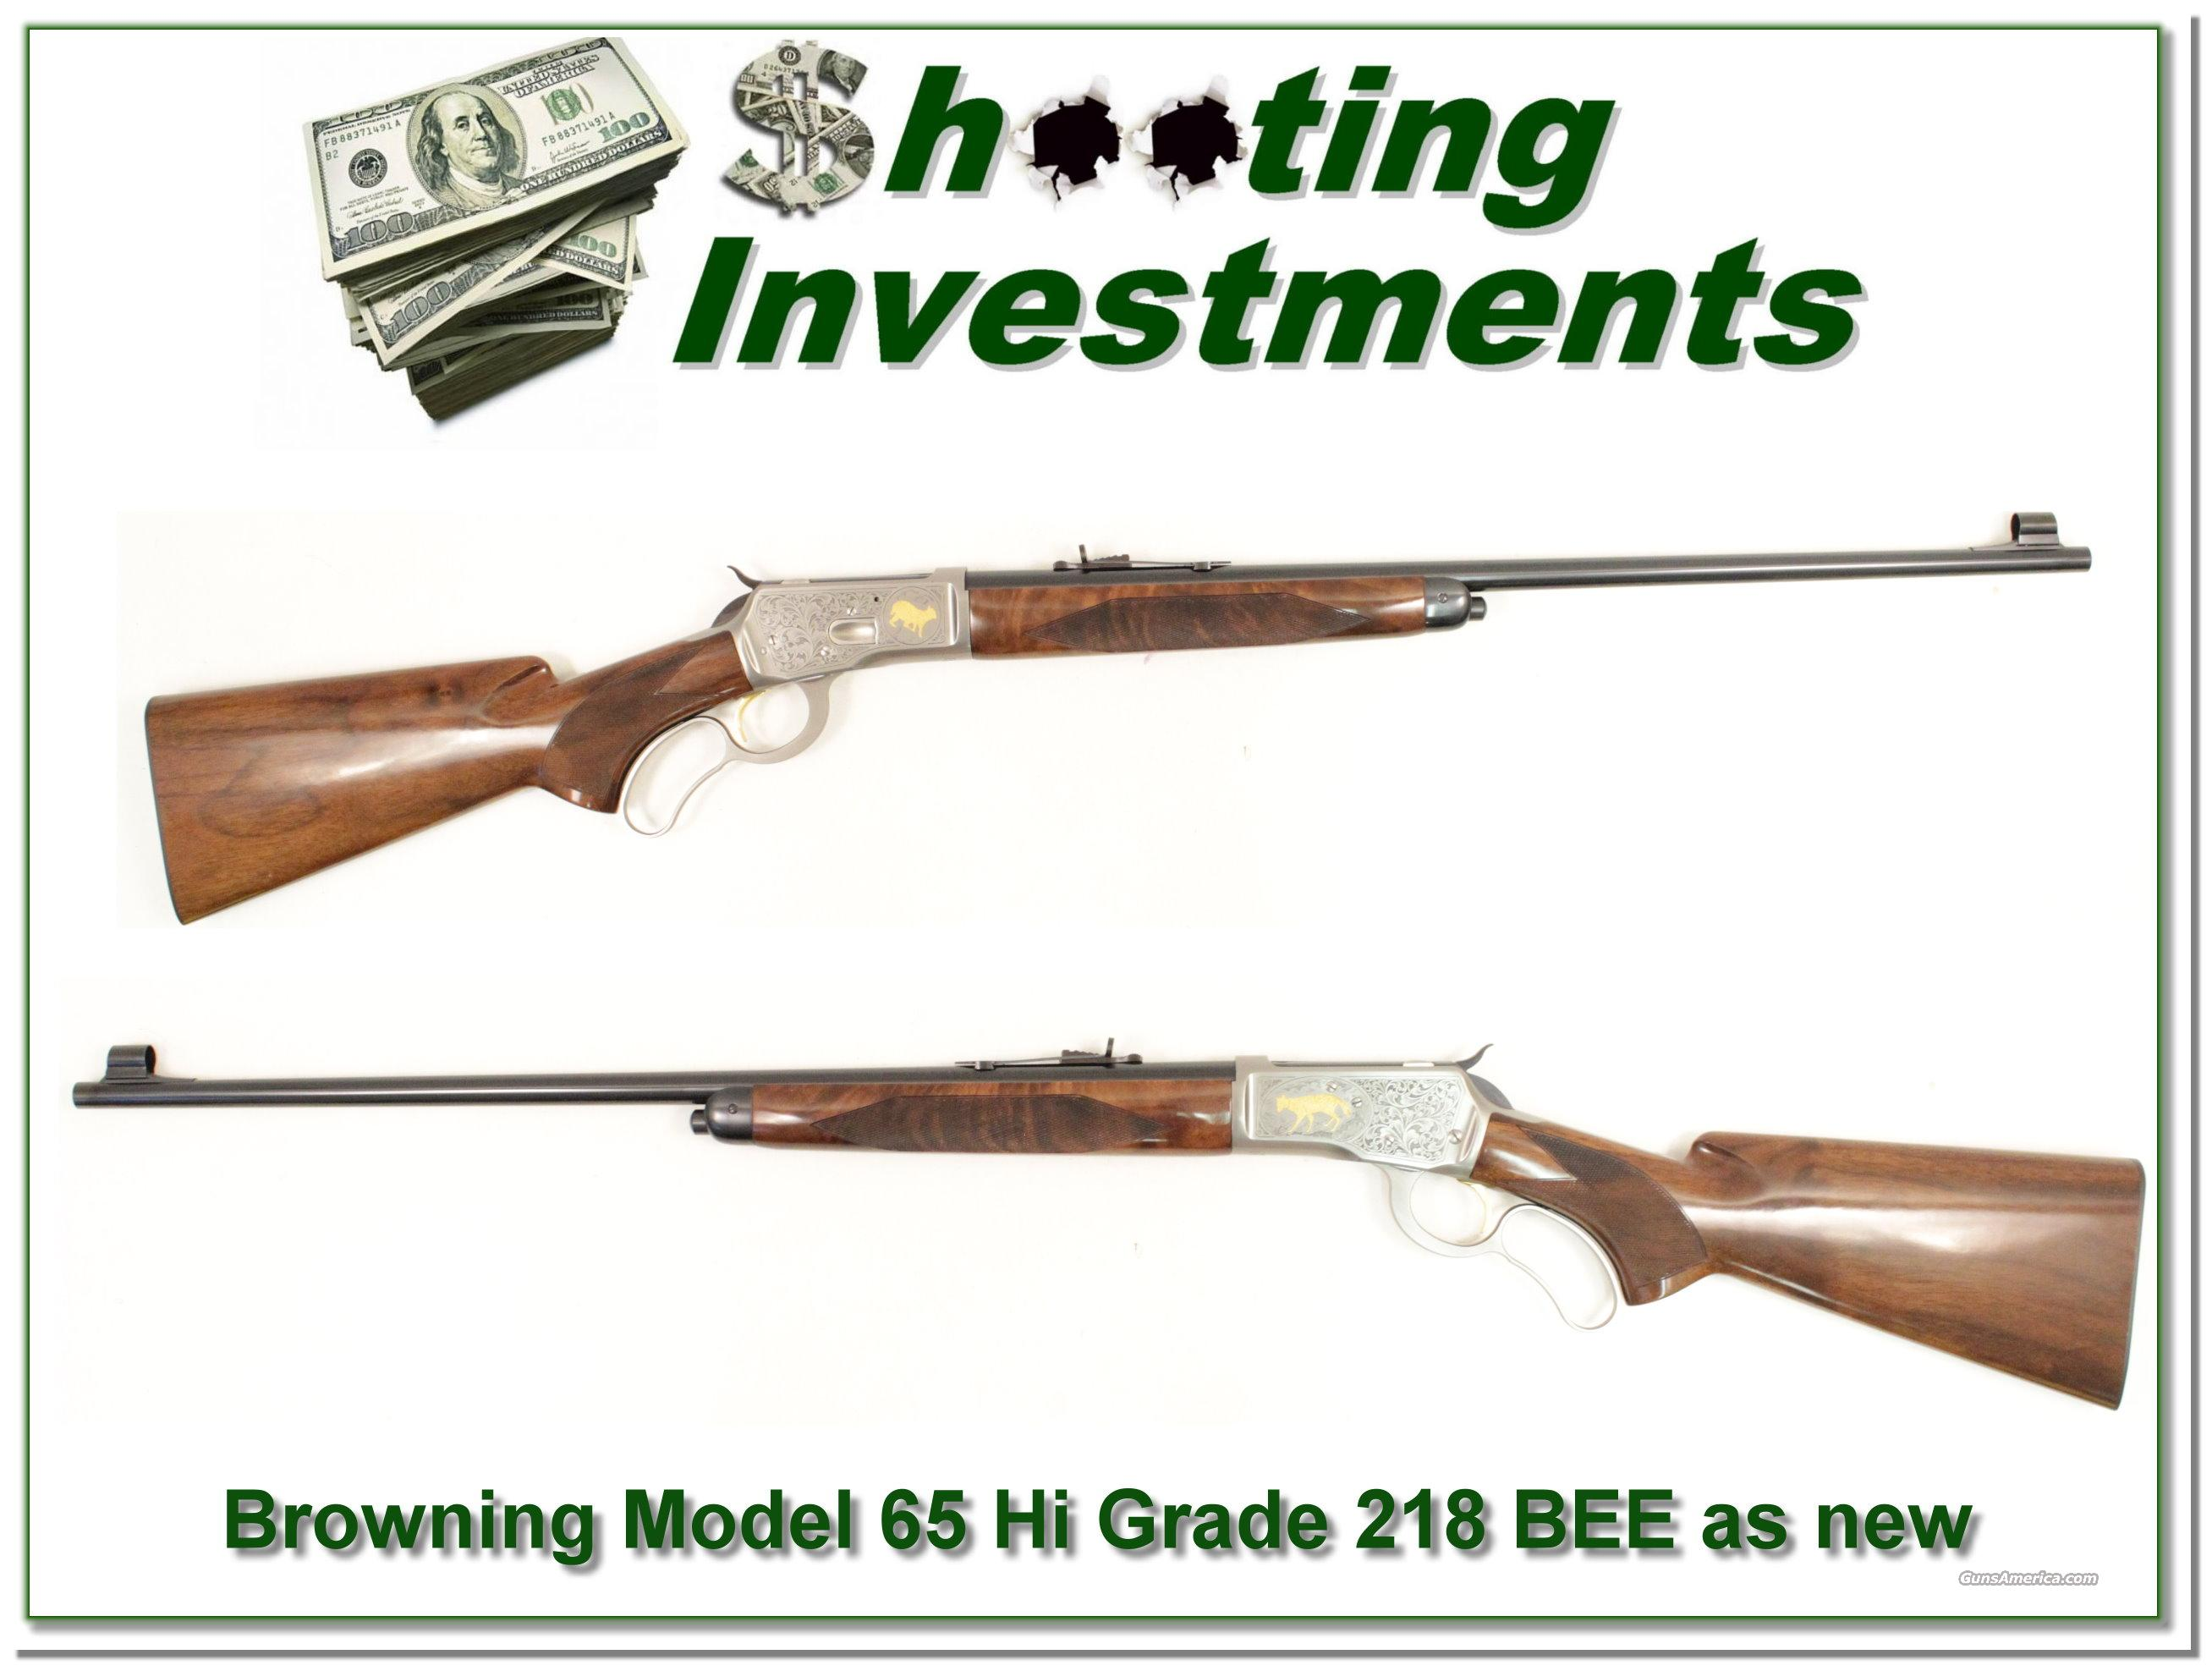 Browning Model 65 High Grade 218 Bee as new!  Guns > Rifles > Browning Rifles > Lever Action